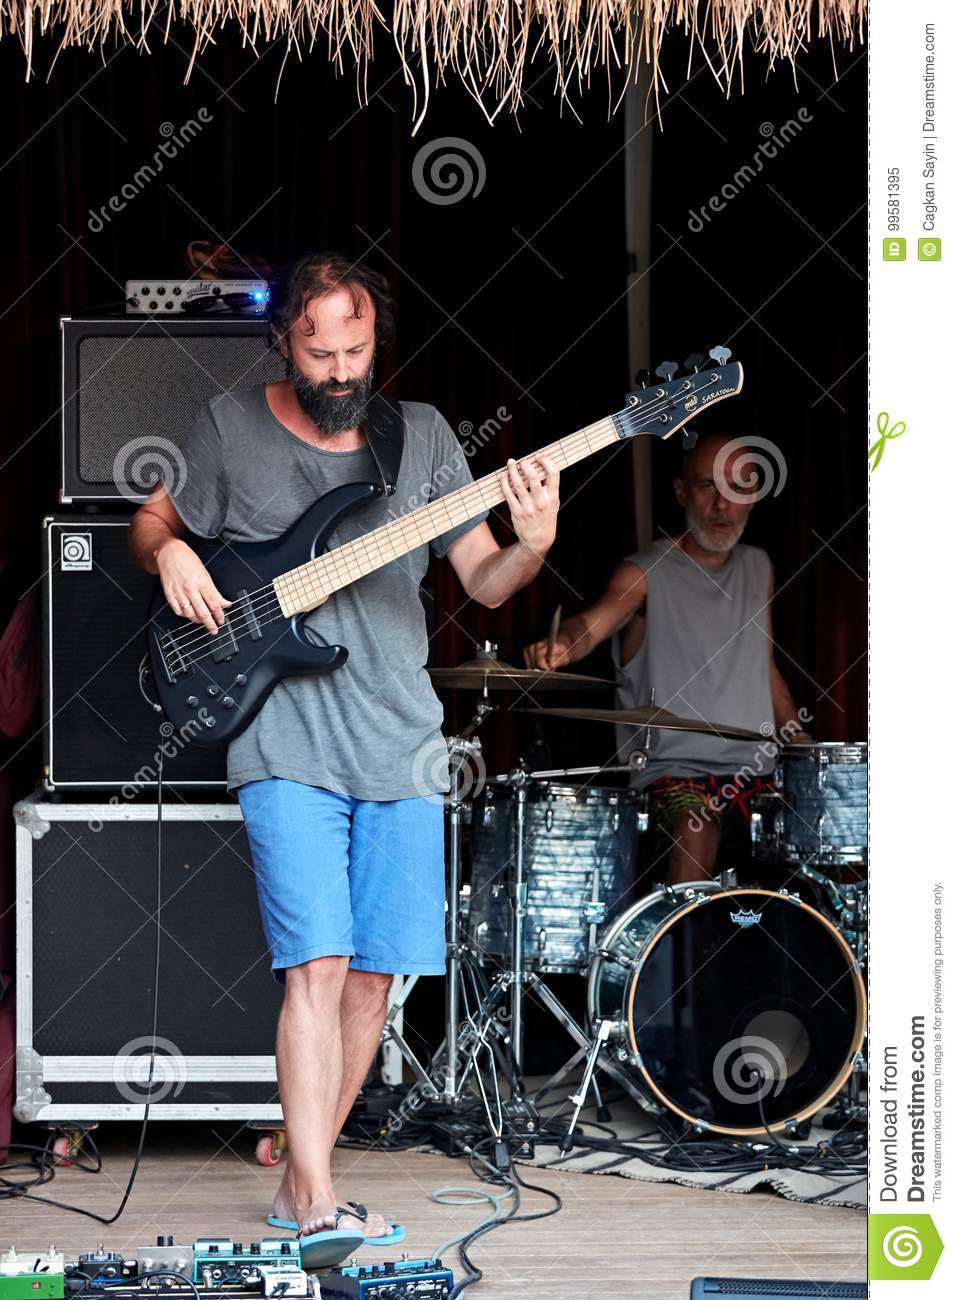 Jazz Bass Player And Drummer On Stage Editorial Image - Image of ... 04afc2d556f4